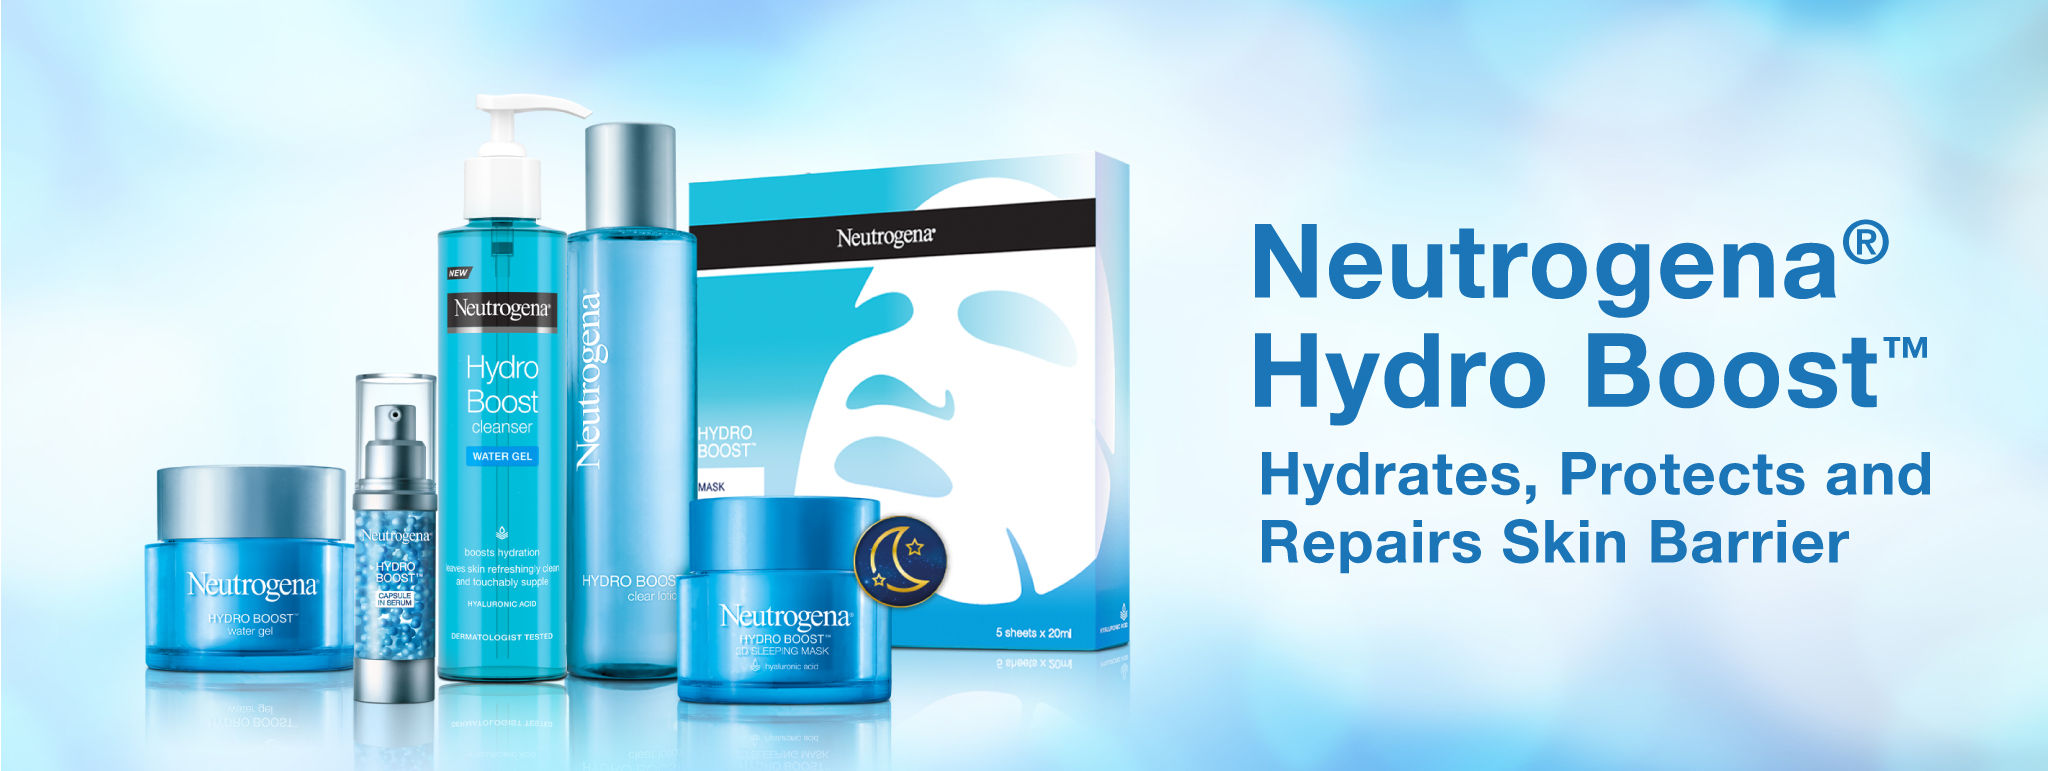 neutrogena-website-banner-2.jpeg